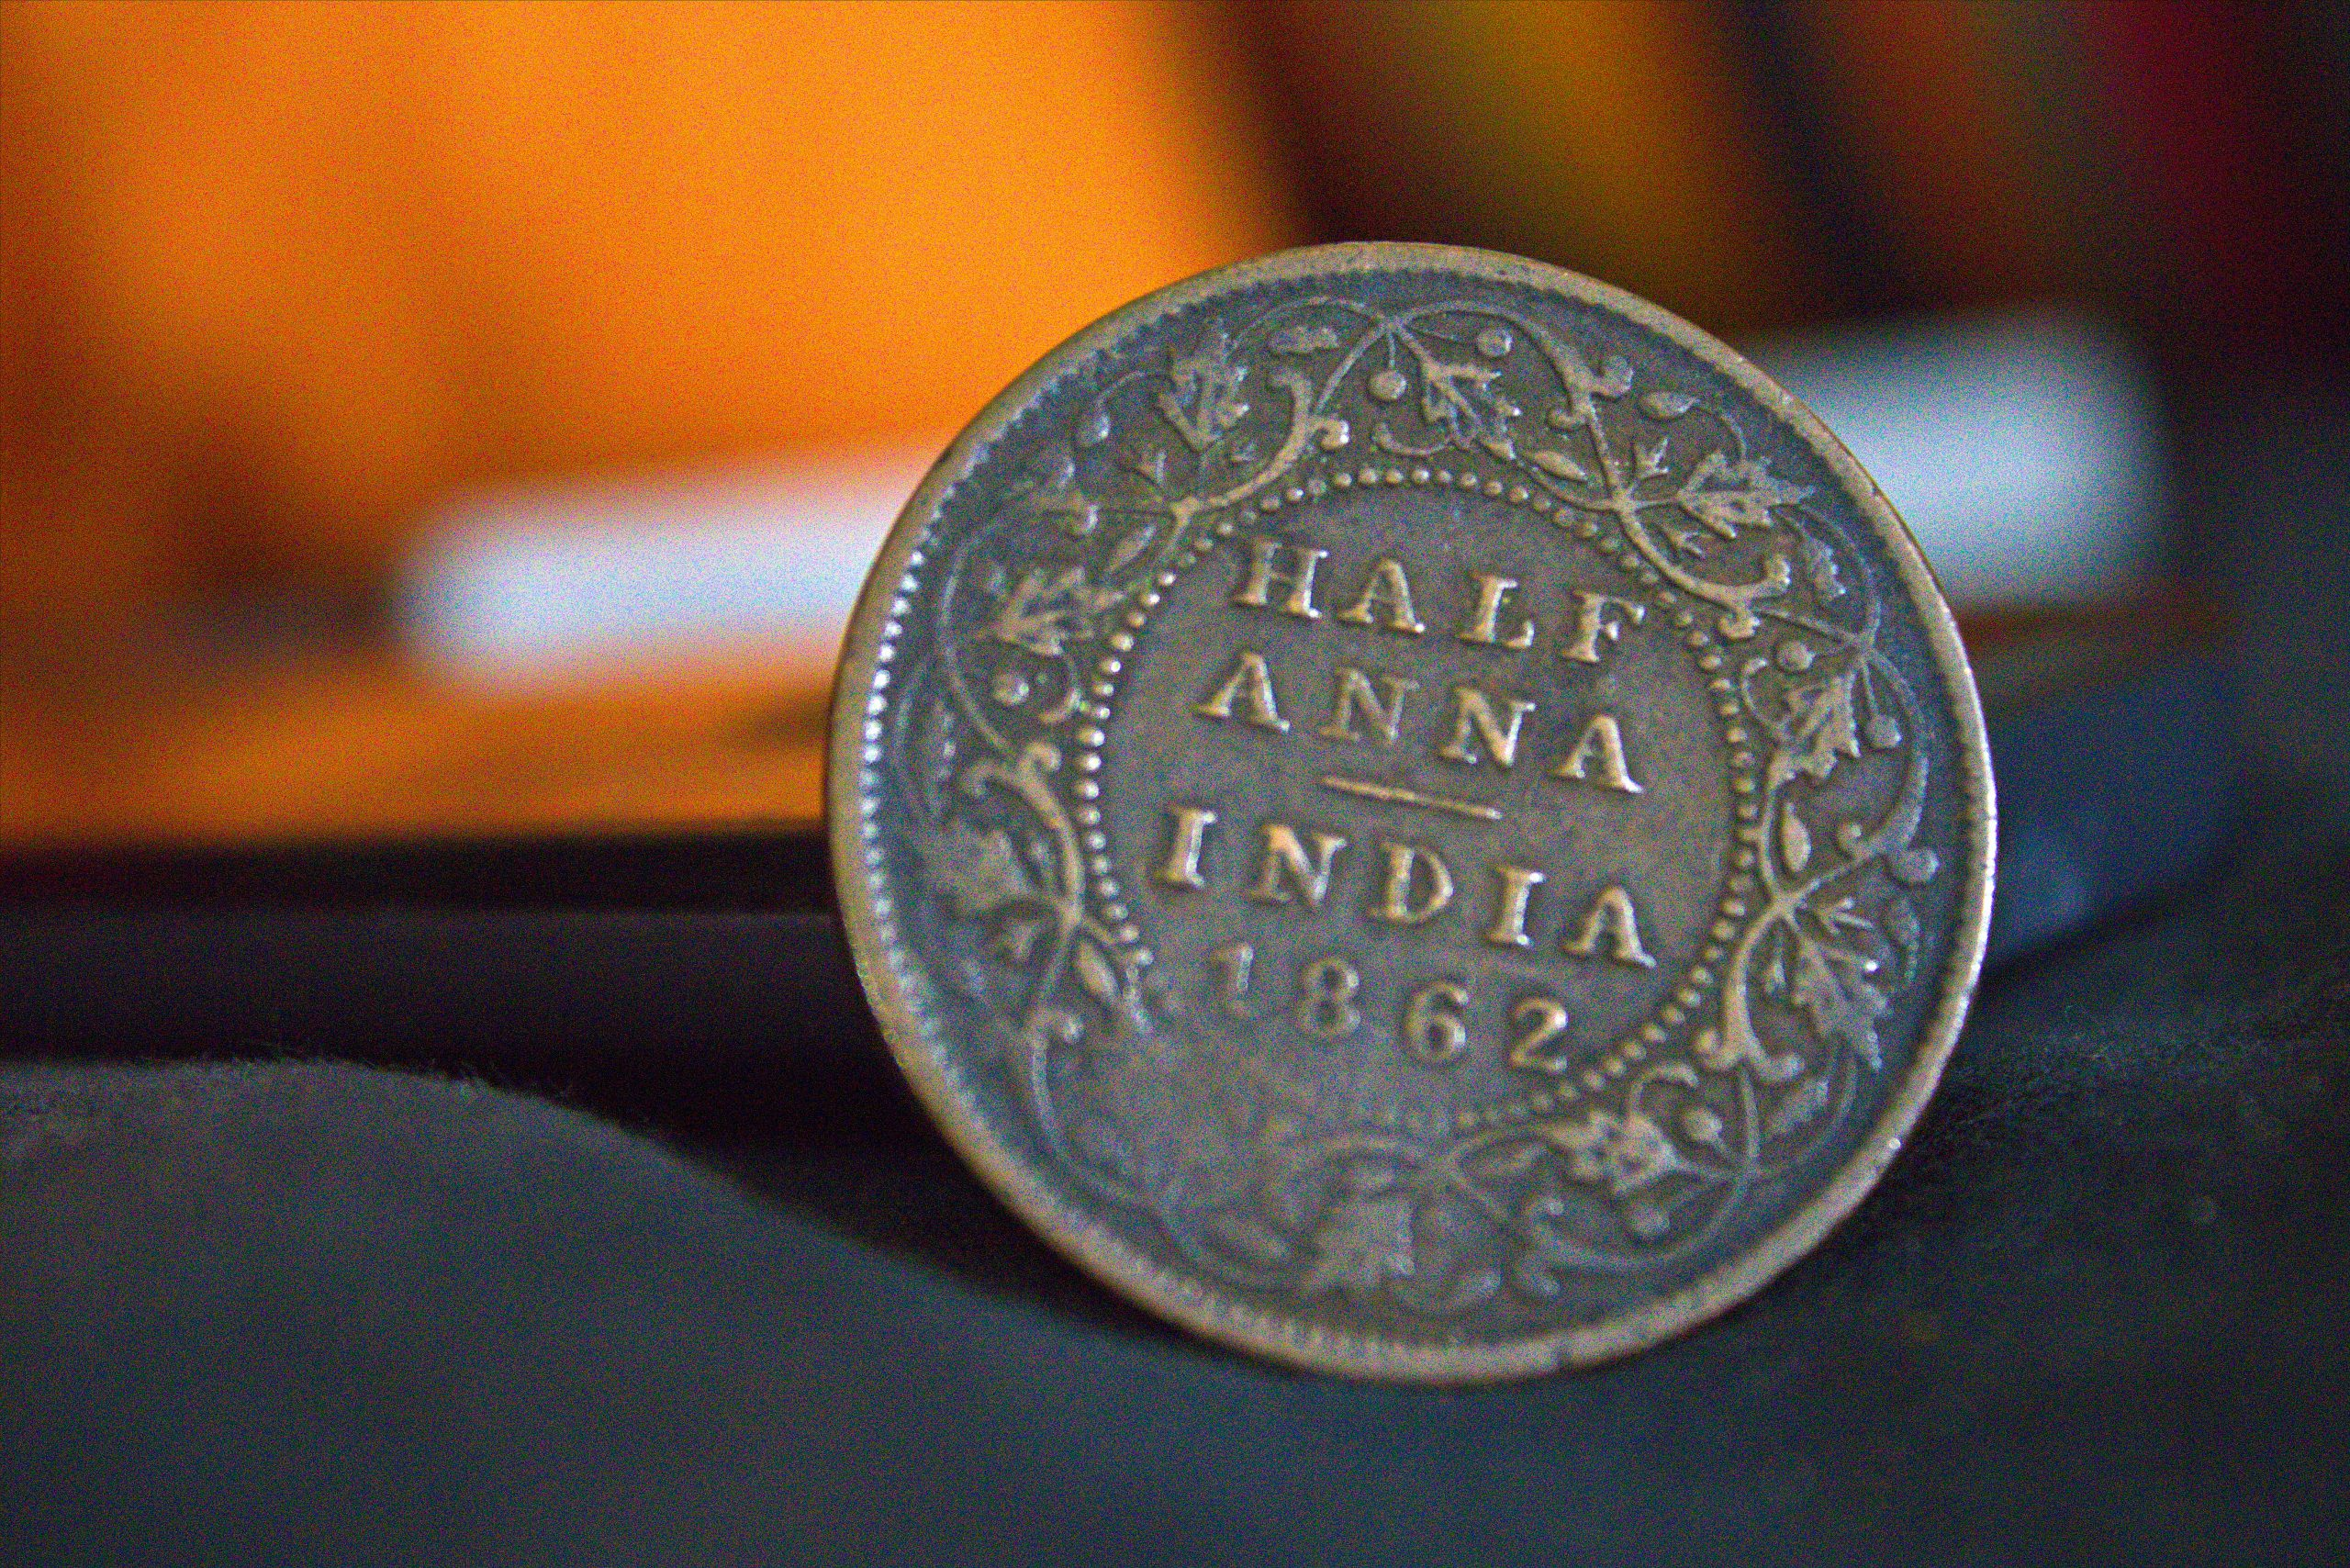 An old coin of Indian currency